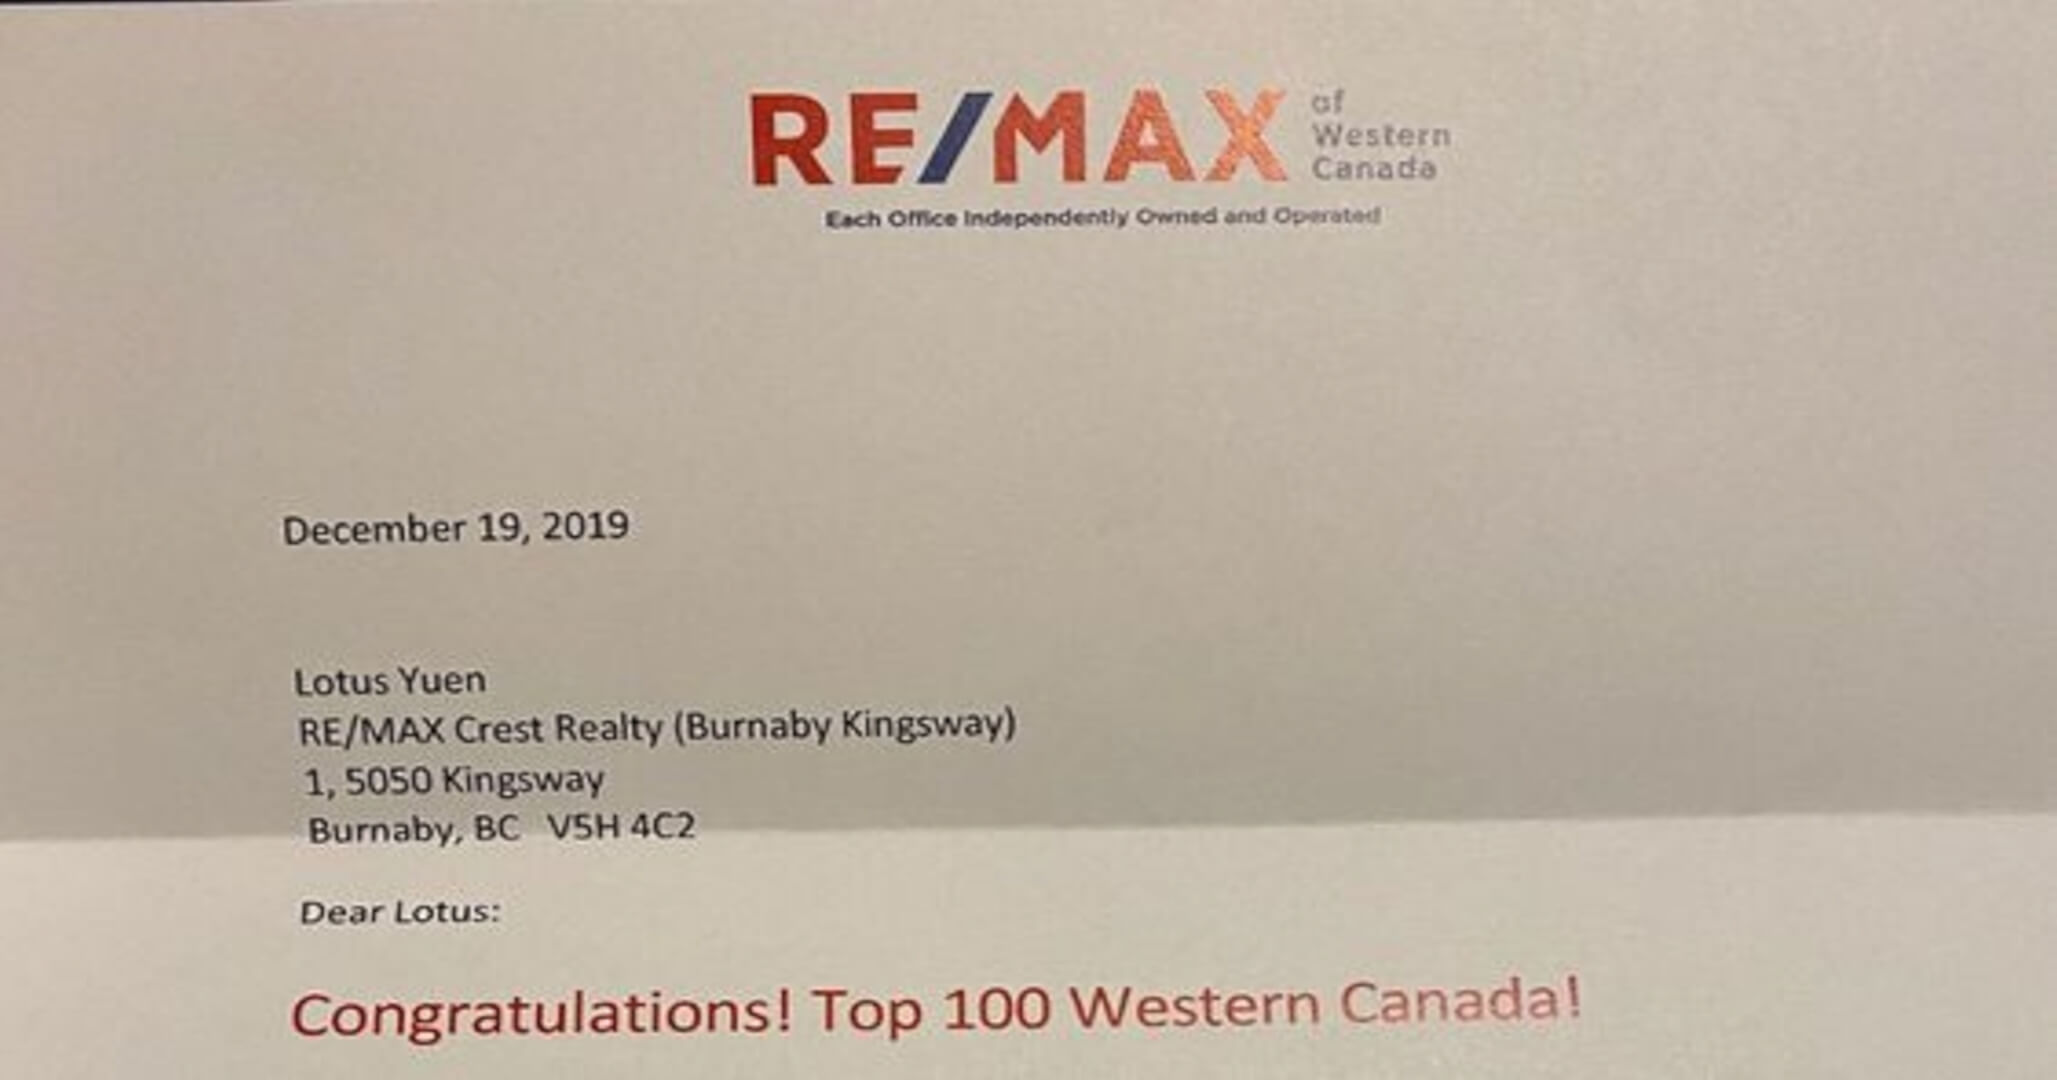 TOP 100 REMAX REALTOR – RE/MAX WESTERN CANADA (Nov 2019)